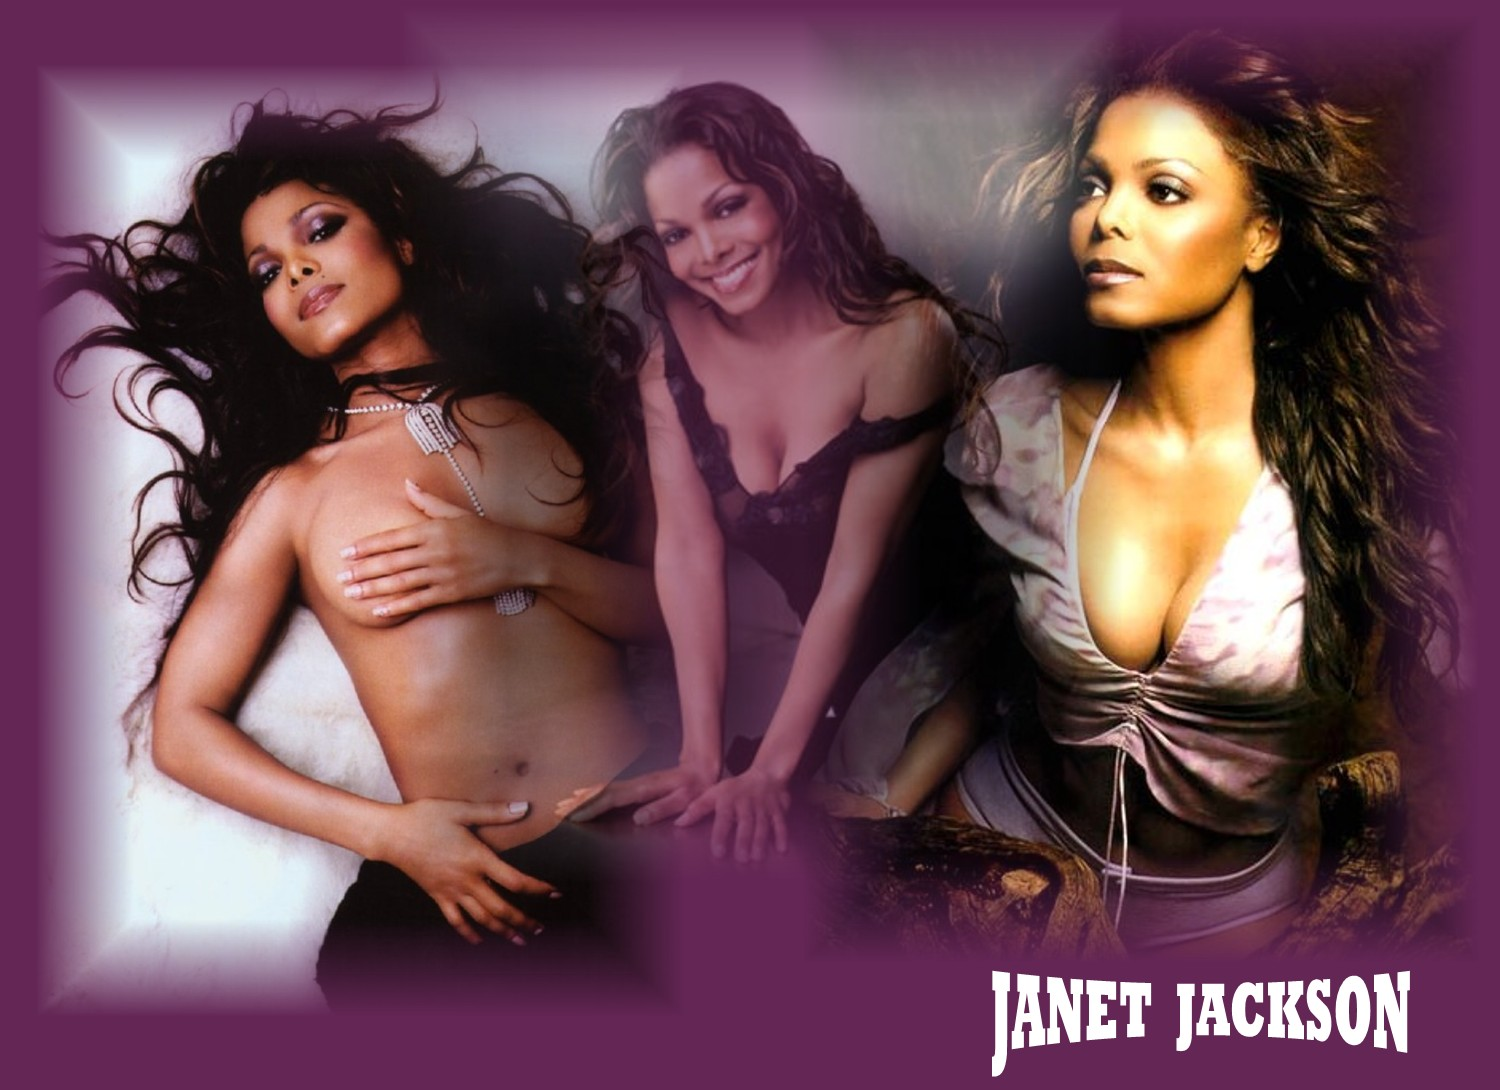 Janet jackson wallpaper 9